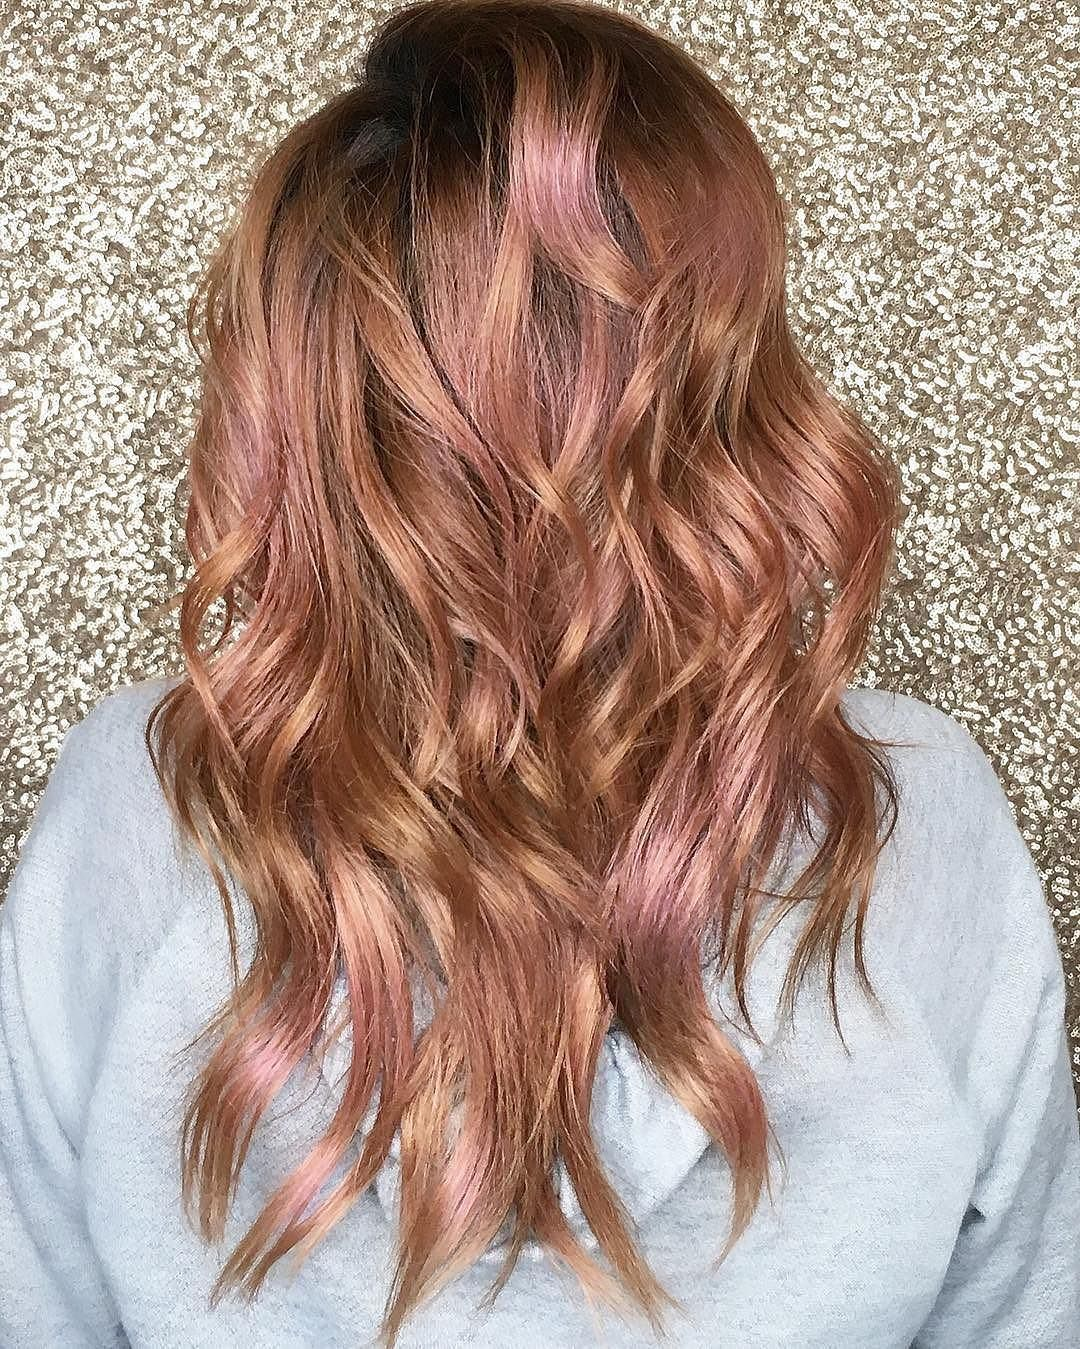 Overtone On Instagram Sparkles Hoodie Rose Gold Curls Achieved With Pastel Pink Hair Color Cherry Coke Rose Gold Hair Blonde Balayage Hair Blonde Long